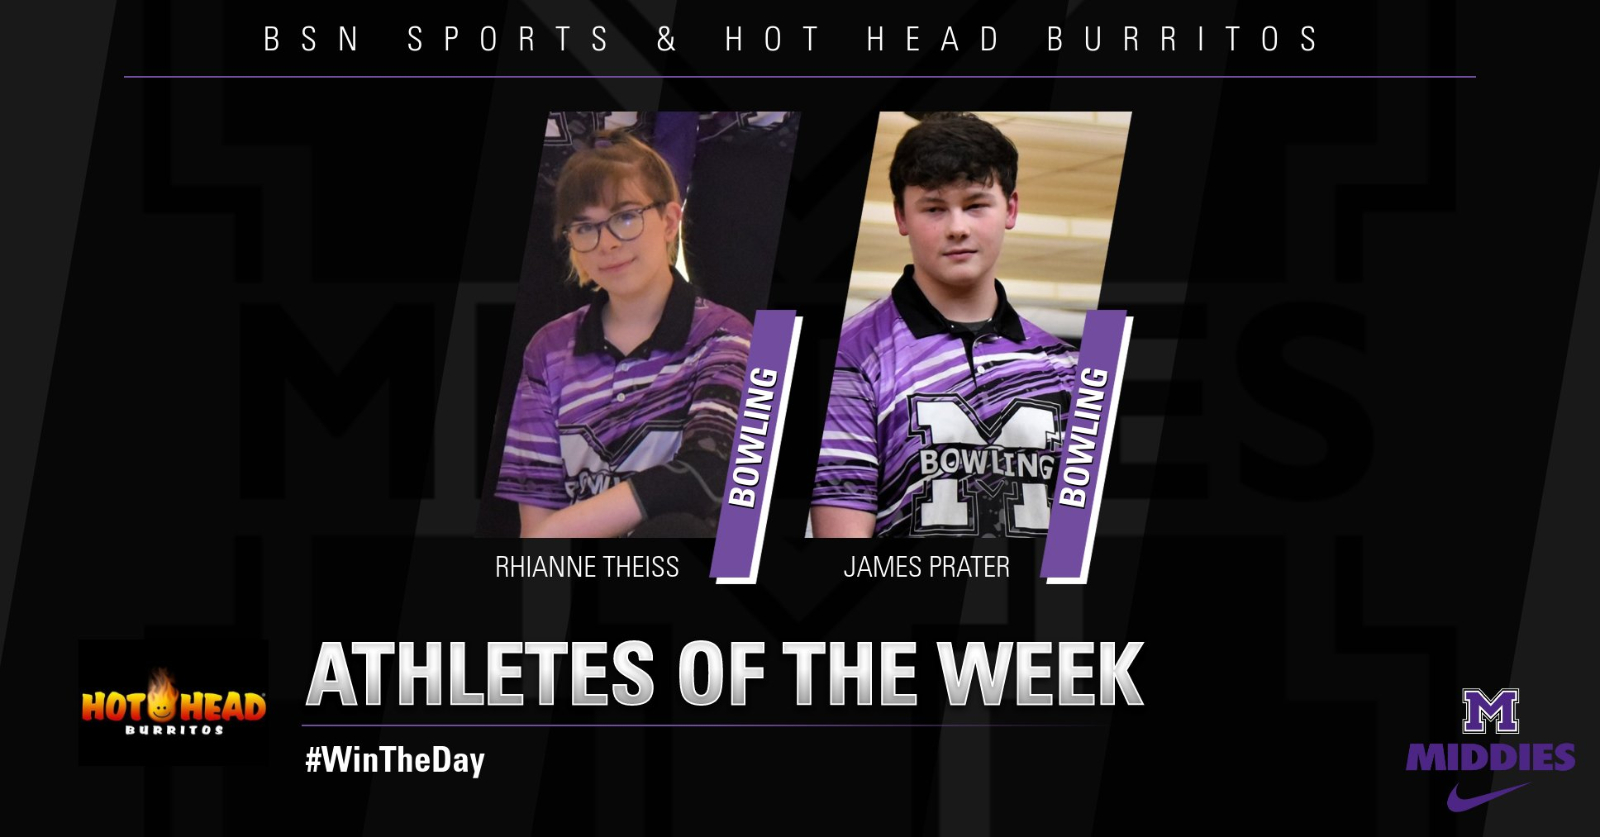 BSN SPORTS & HOT HEAD BURRITOS STUDENT-ATHLETES OF THE WEEK